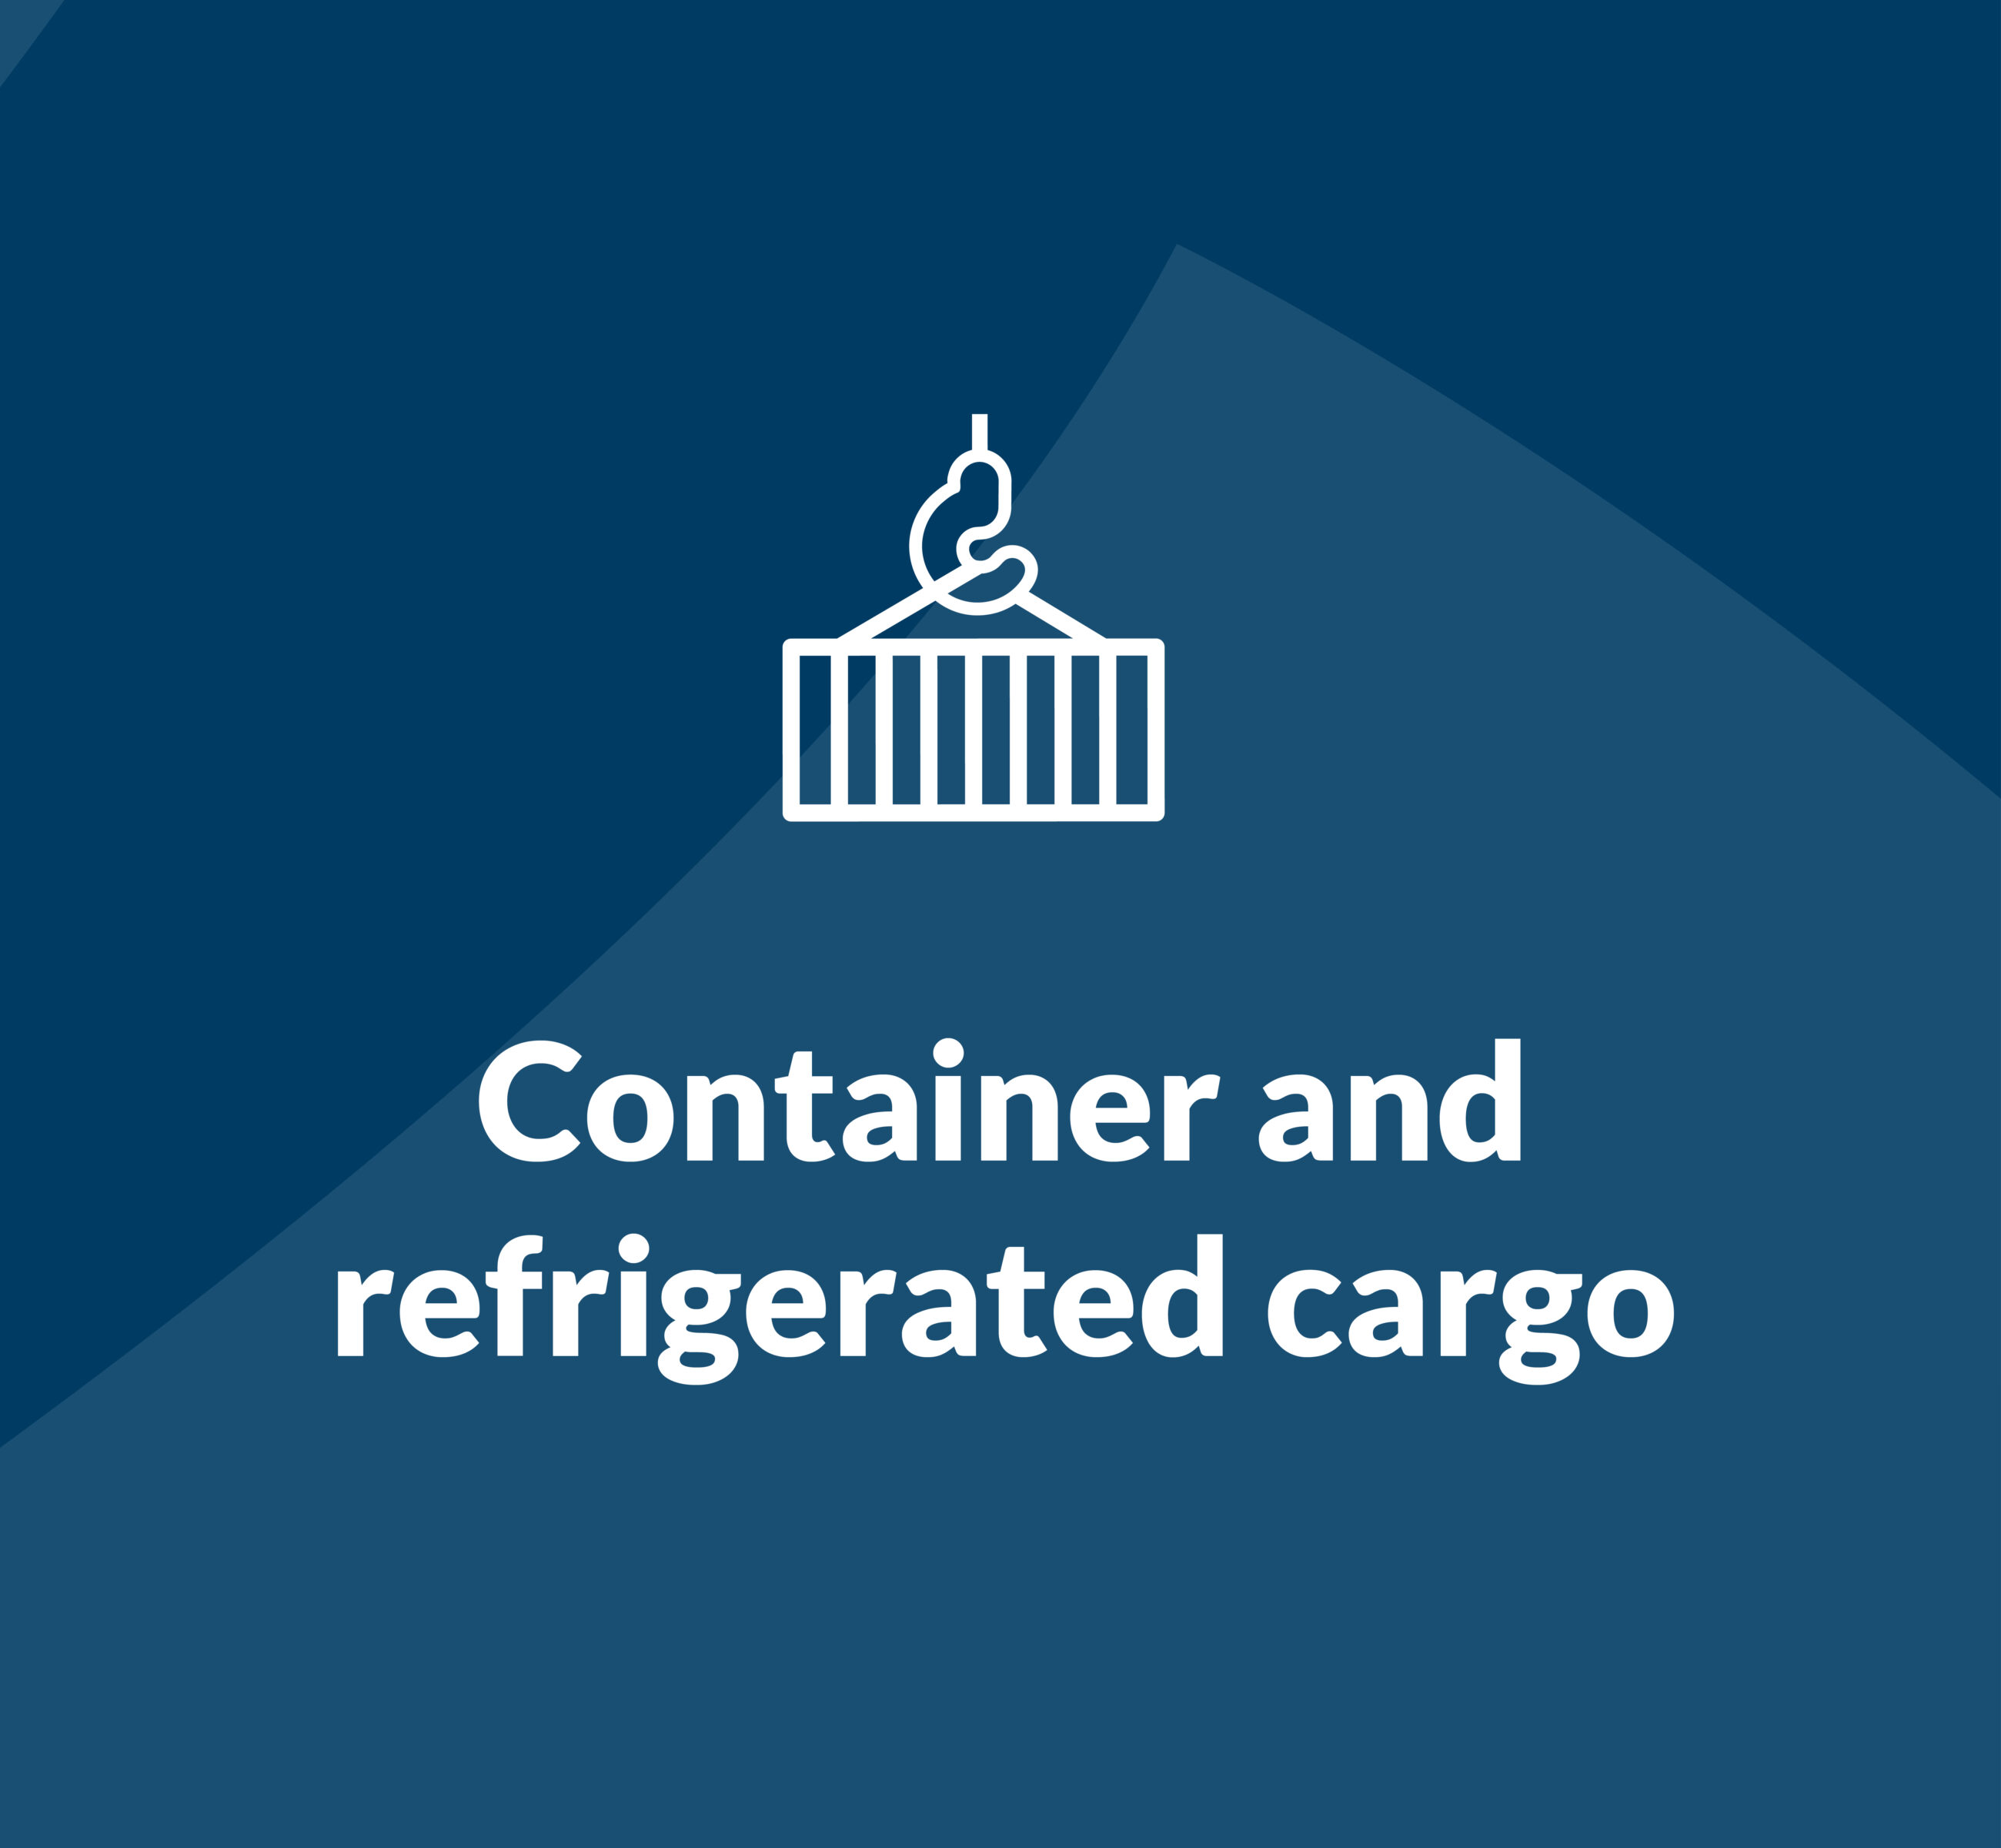 Container and refrigerated cargo